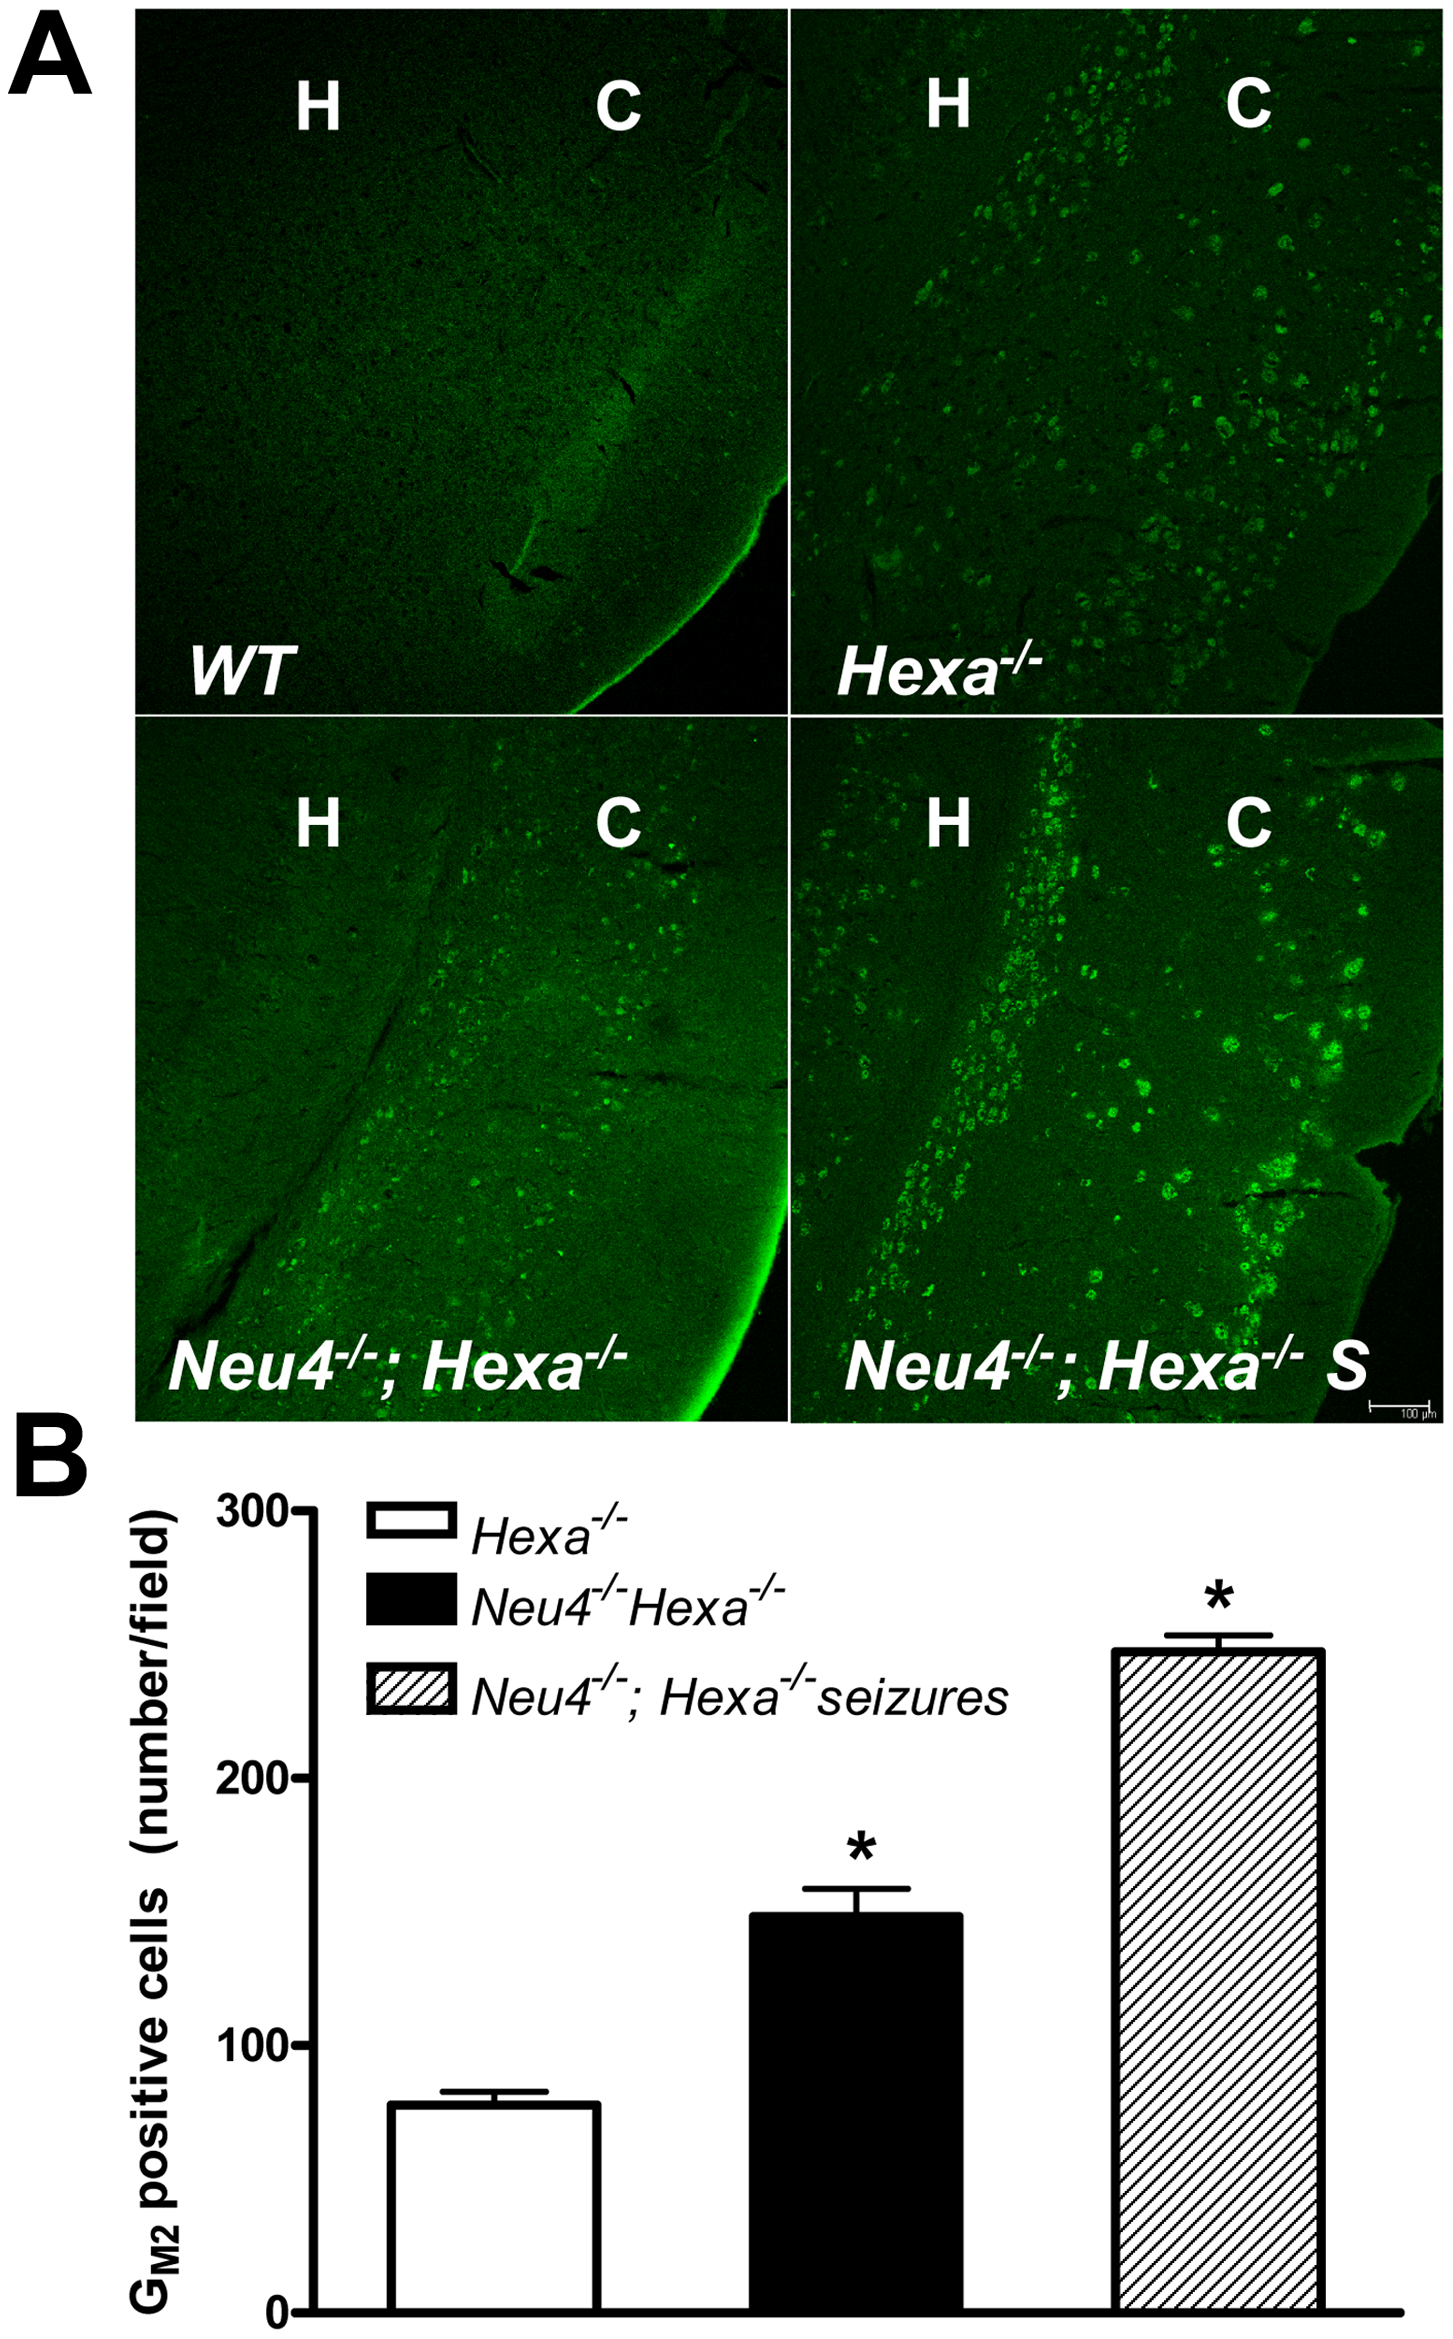 Increased accumulation of G<sub>M2</sub> ganglioside in brain neurons of double knockout <i>Neu4<sup>−/−</sup>; Hexa<sup>−/−</sup></i> mice.